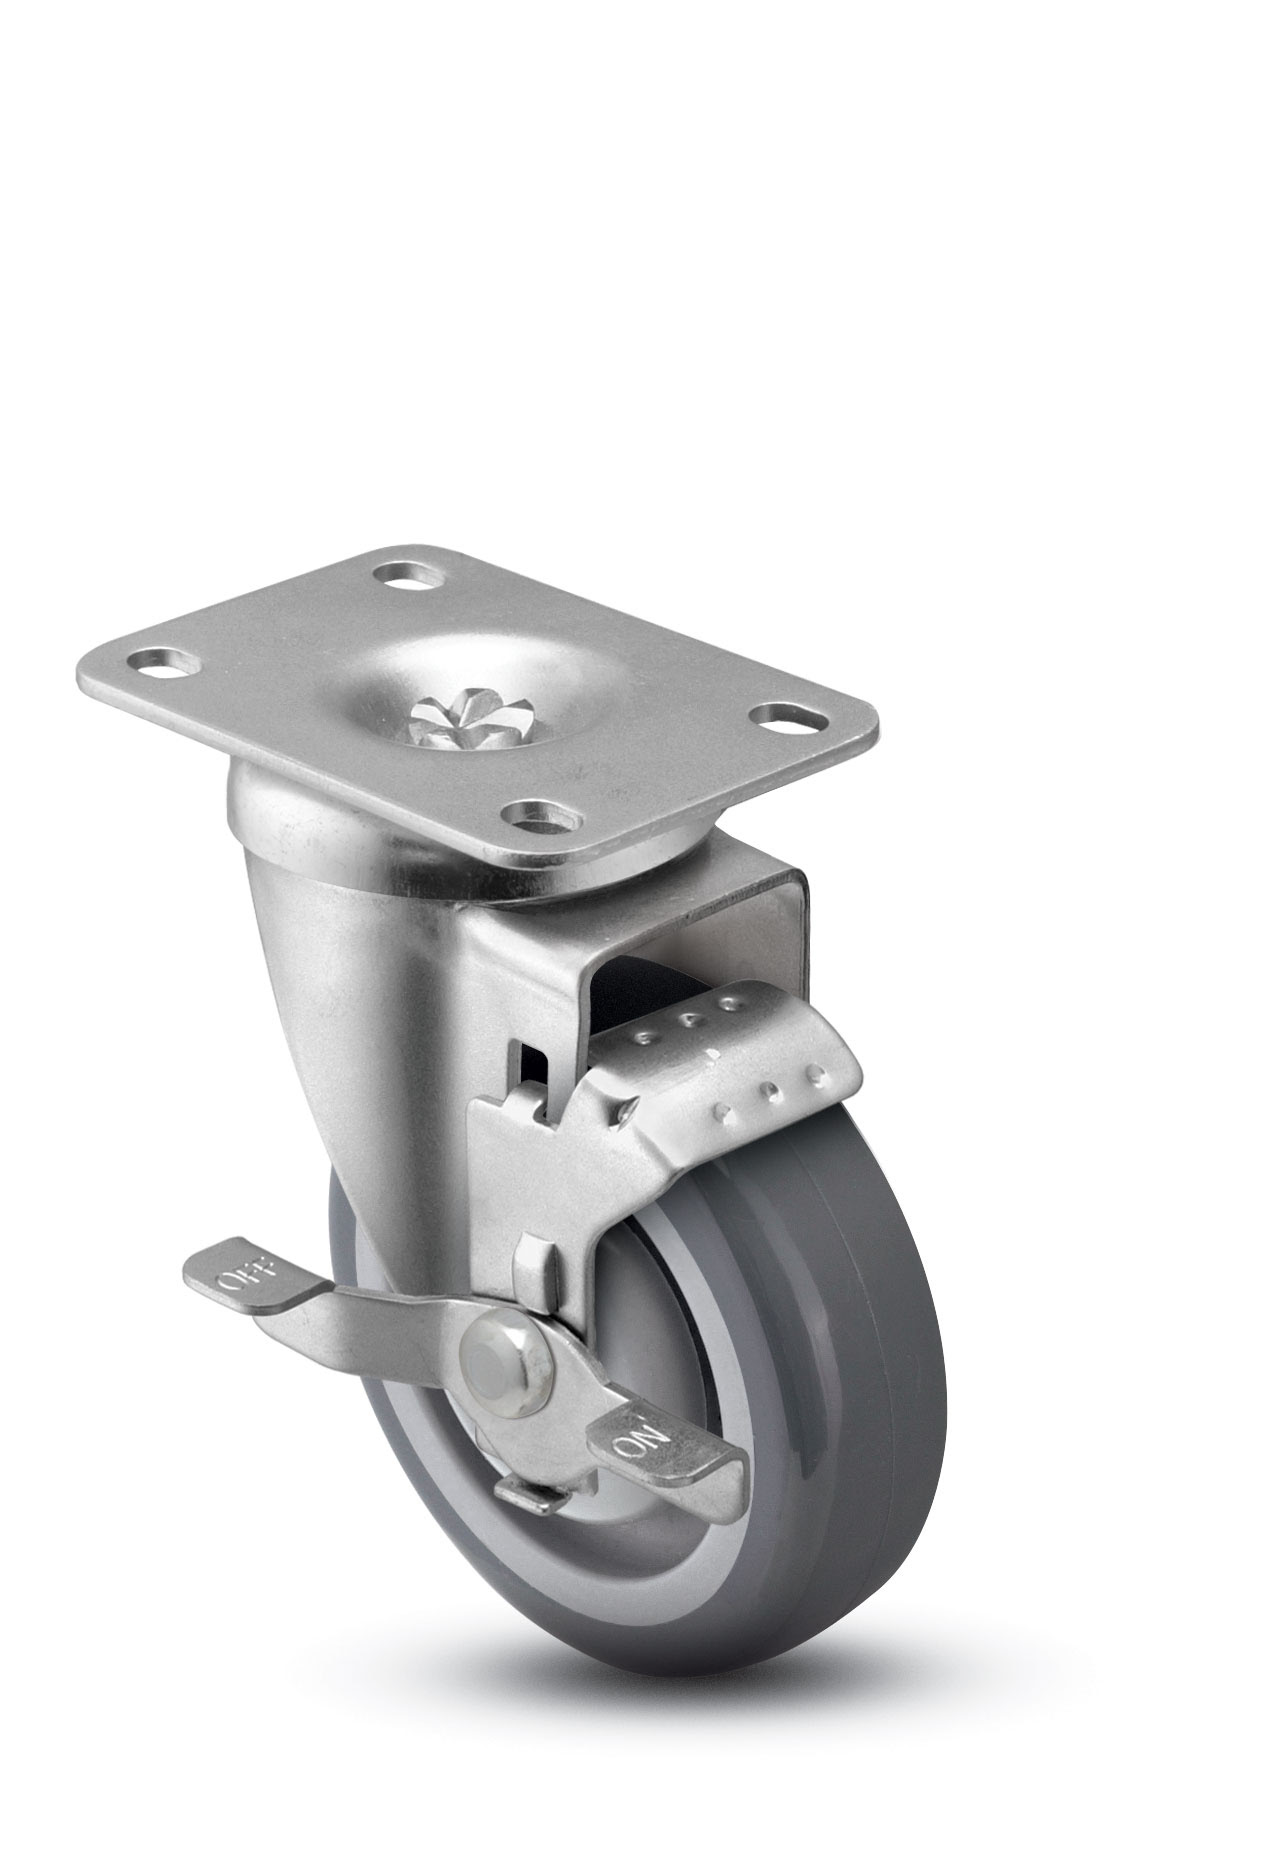 chair casters threaded stem cover hire medway 11 inspirational m8 caster insured by ross